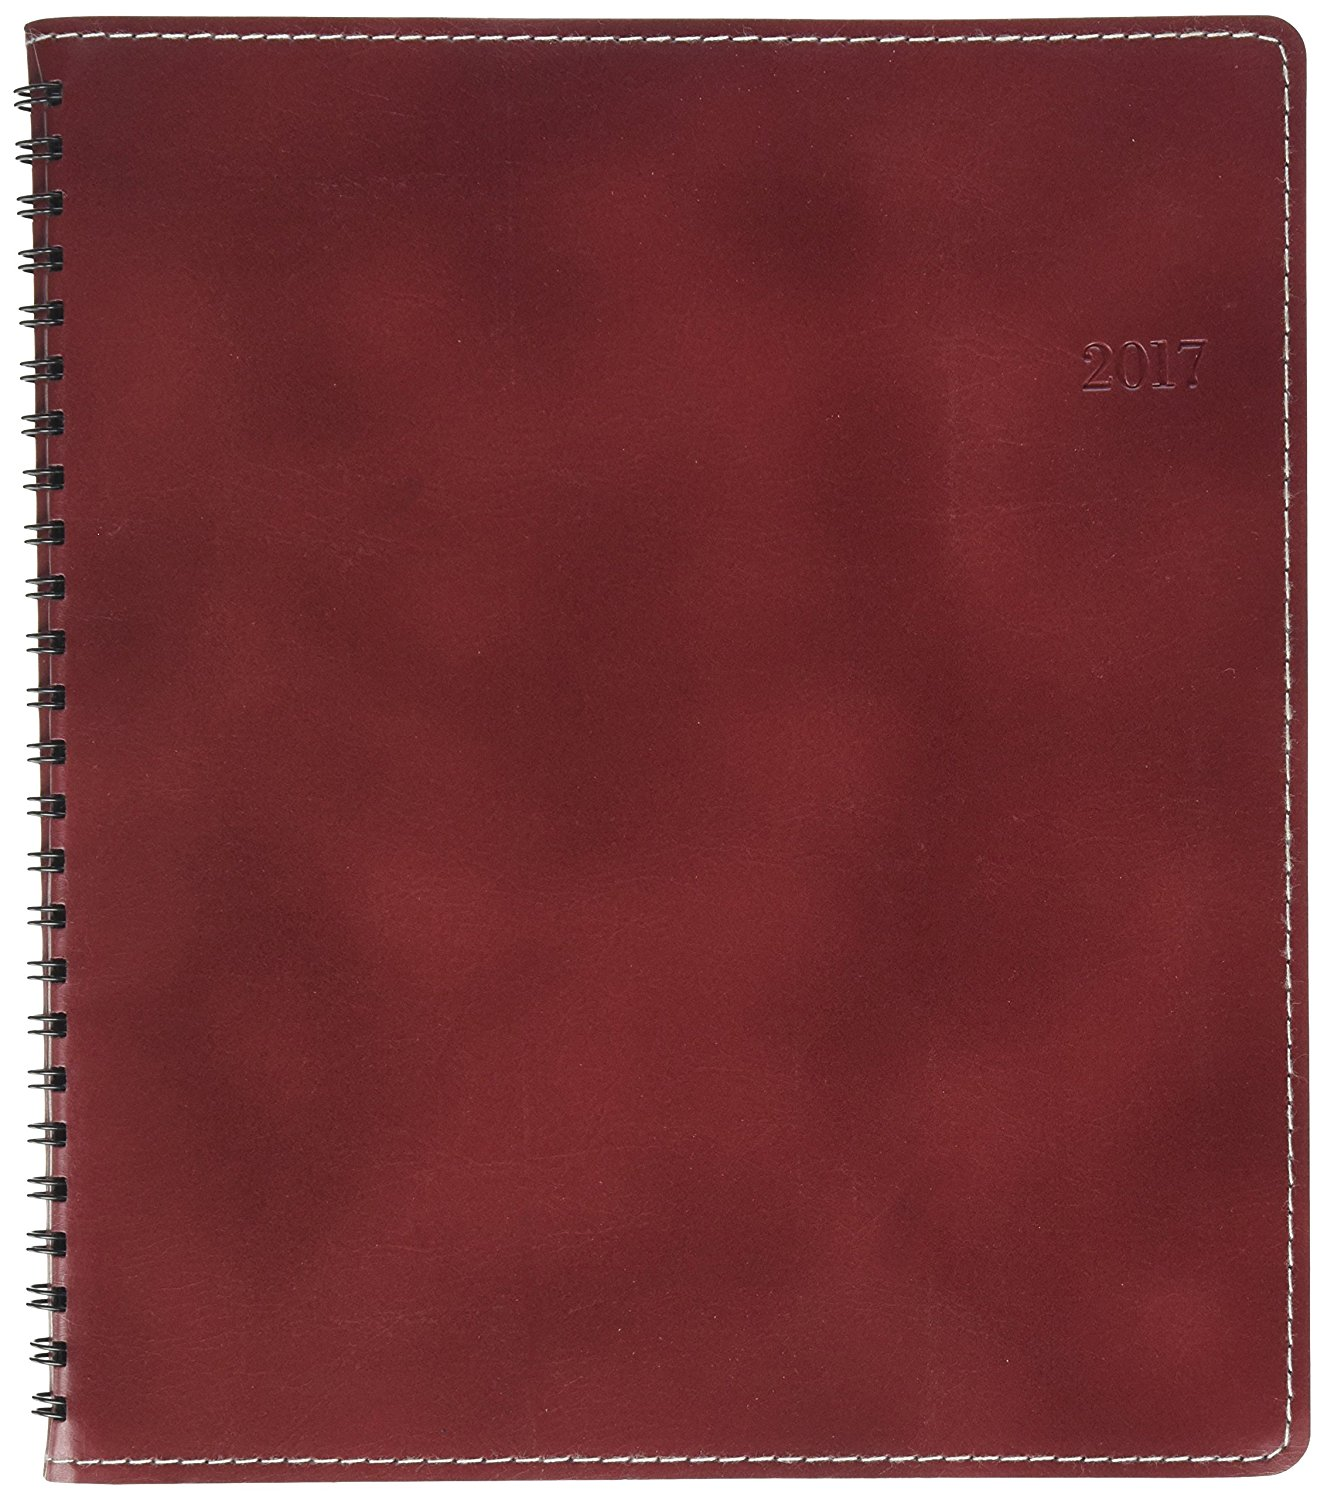 Day-Timer Weekly/Monthly Planner, Medium, 6-7/8 x 8-3/4 Inches, Leather/Red (DTM33343)